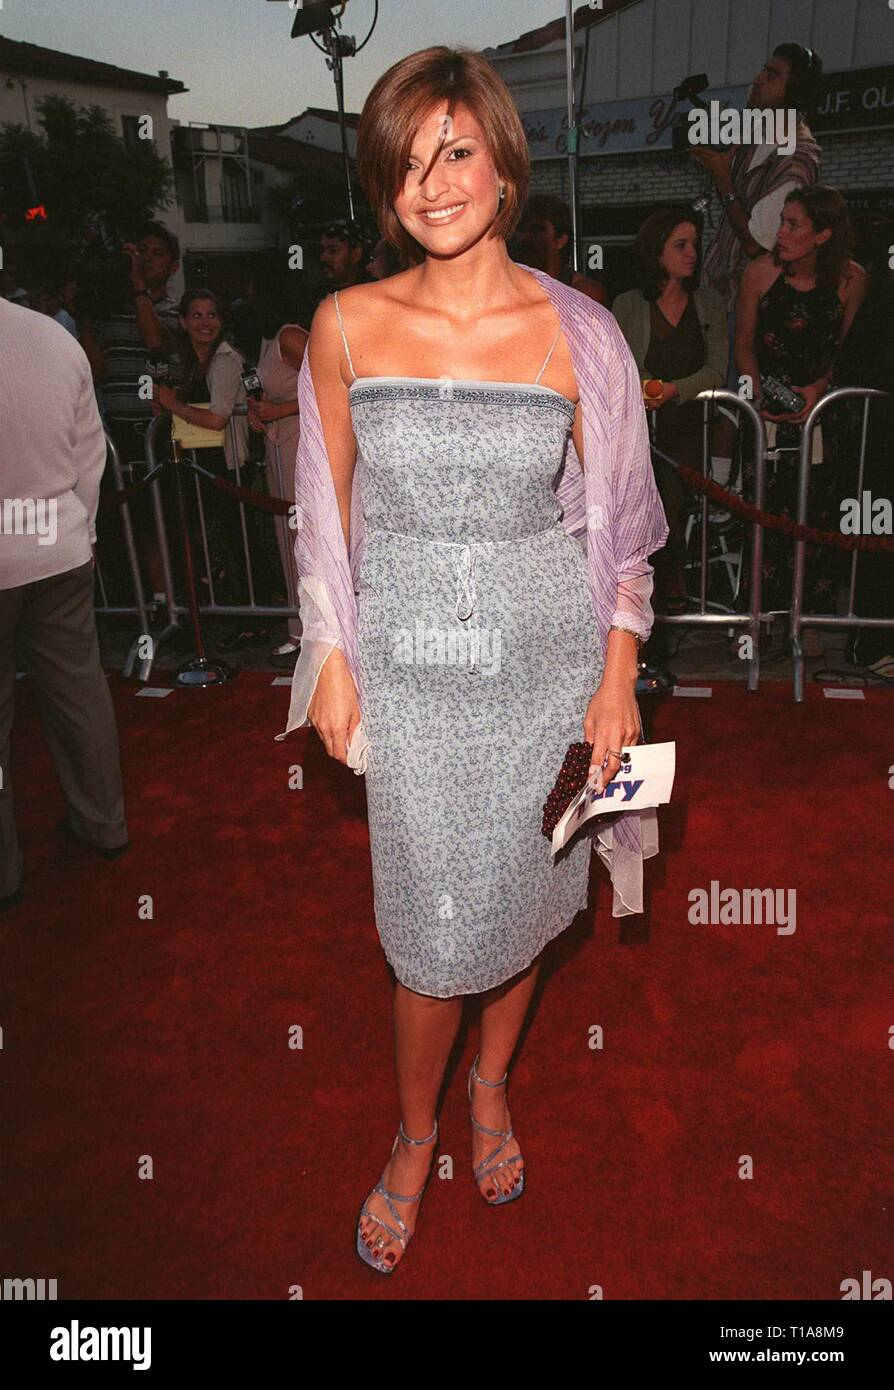 LOS ANGELES, CA - July 9, 1998: Model JENNIFER GIMENEZ at the world premiere, in Los Angeles, of 'There's Something About Mary.' - Stock Image